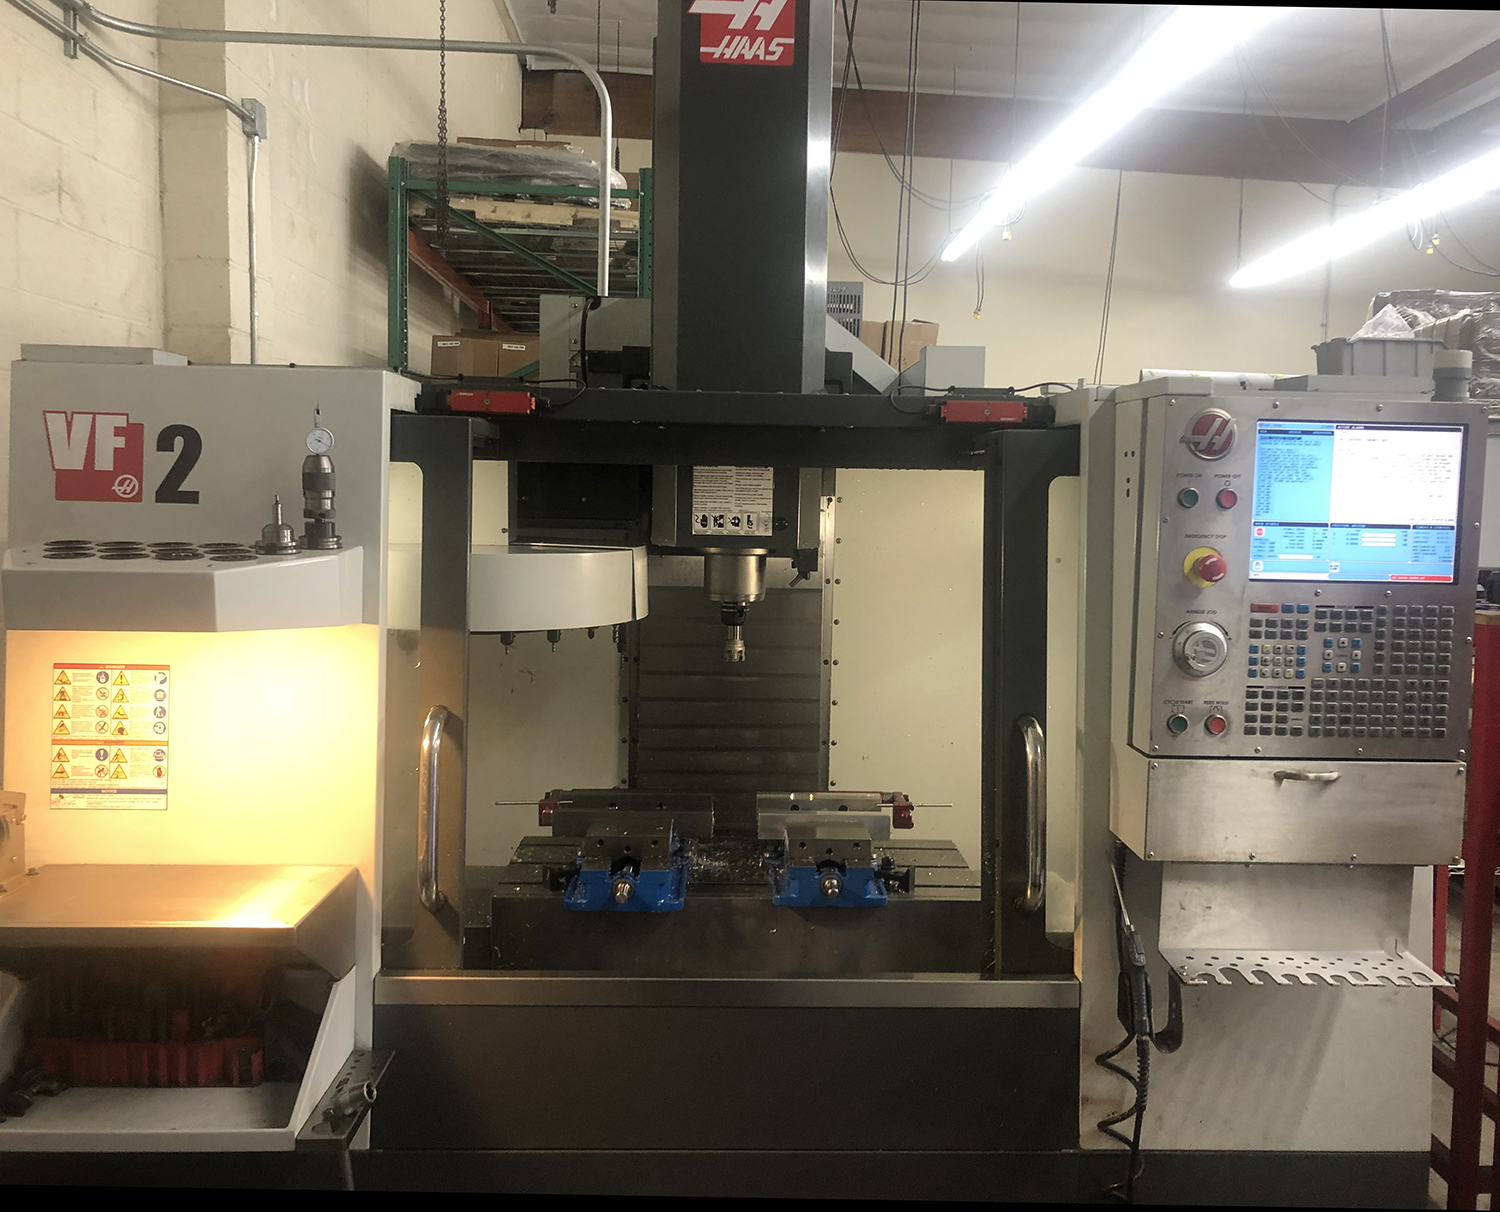 HAAS VF2 3-Axis Wired for 4, 20 Tool, Rigid Tapping, Only 1200 Hrs Run Time